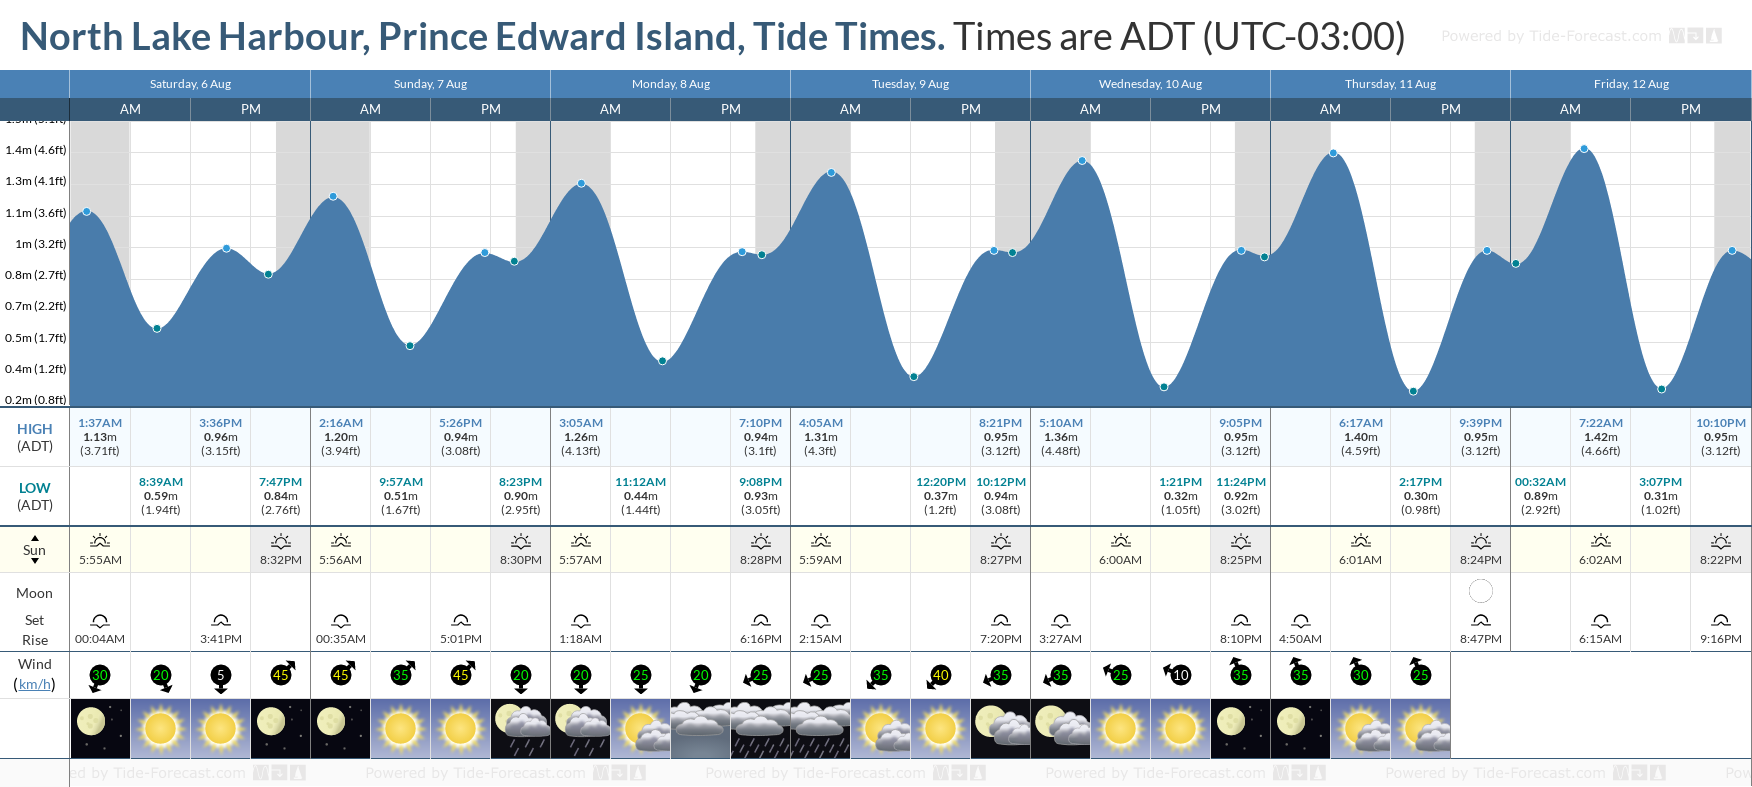 North Lake Harbour, Prince Edward Island Tide Chart including high and low tide tide times for the next 7 days